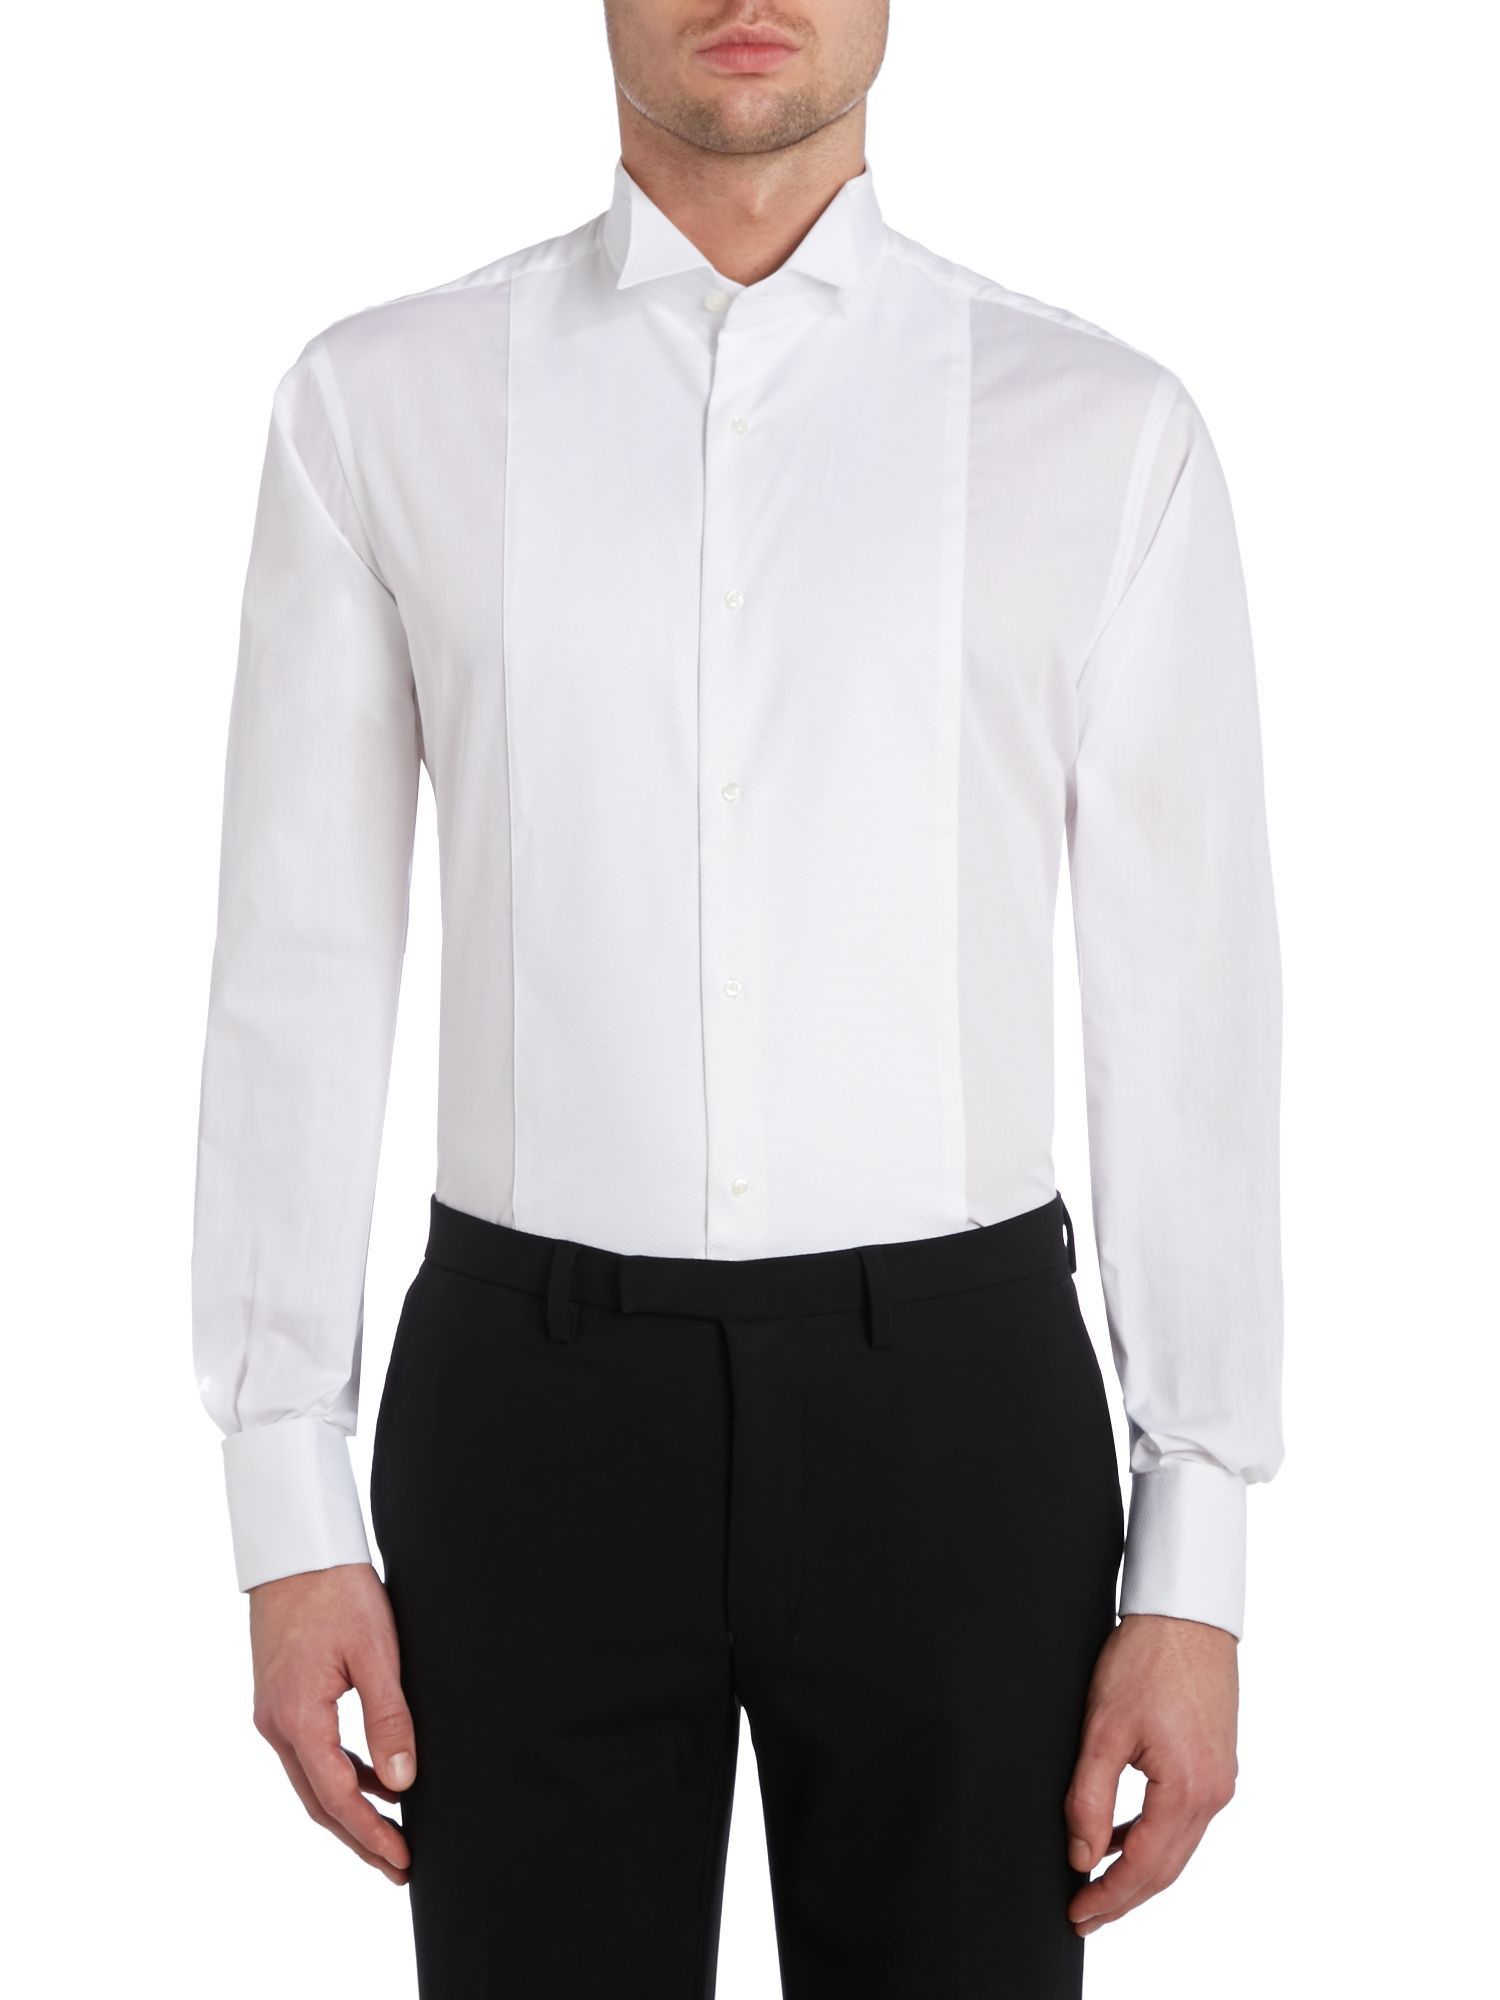 tm lewin marcella plain classic wing collar dress shirt in